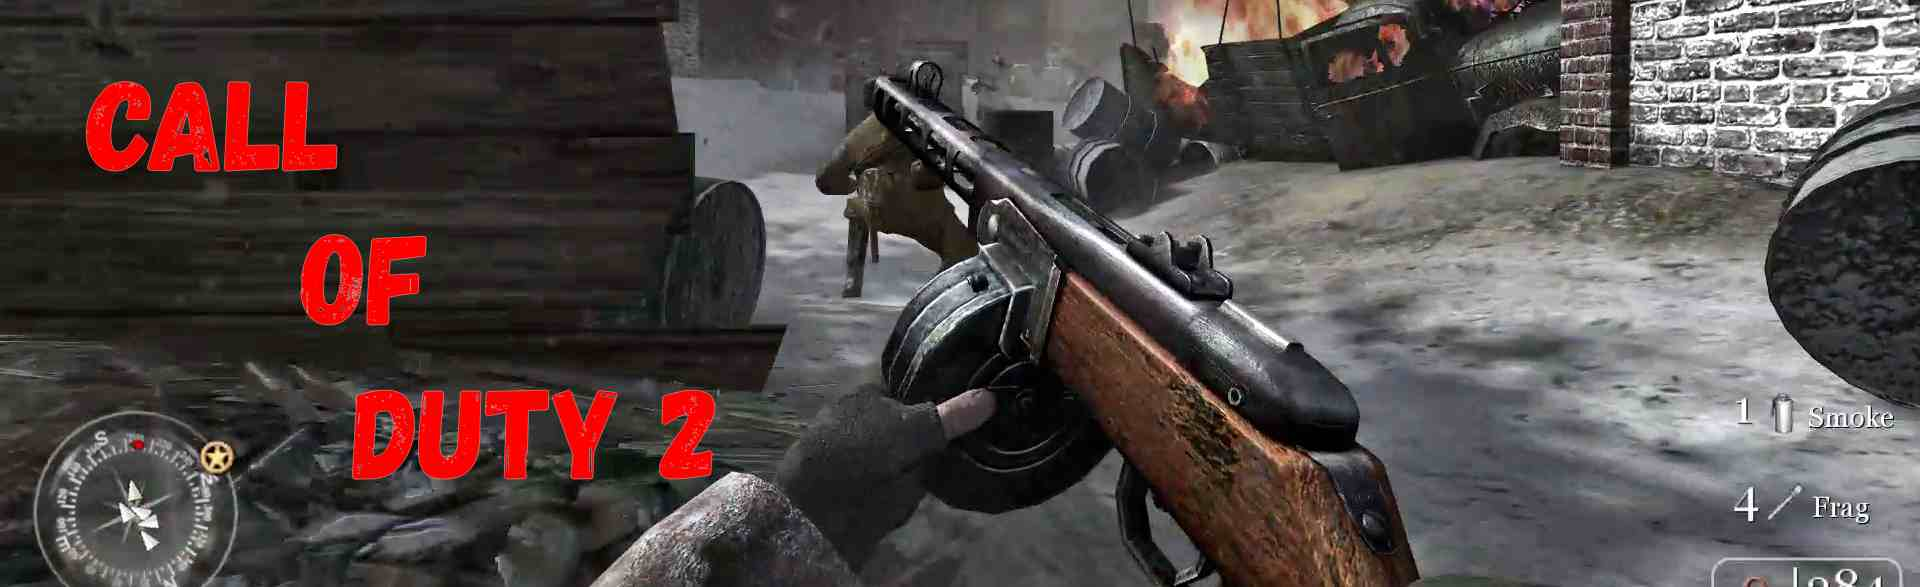 free pc games download full version highly compressed